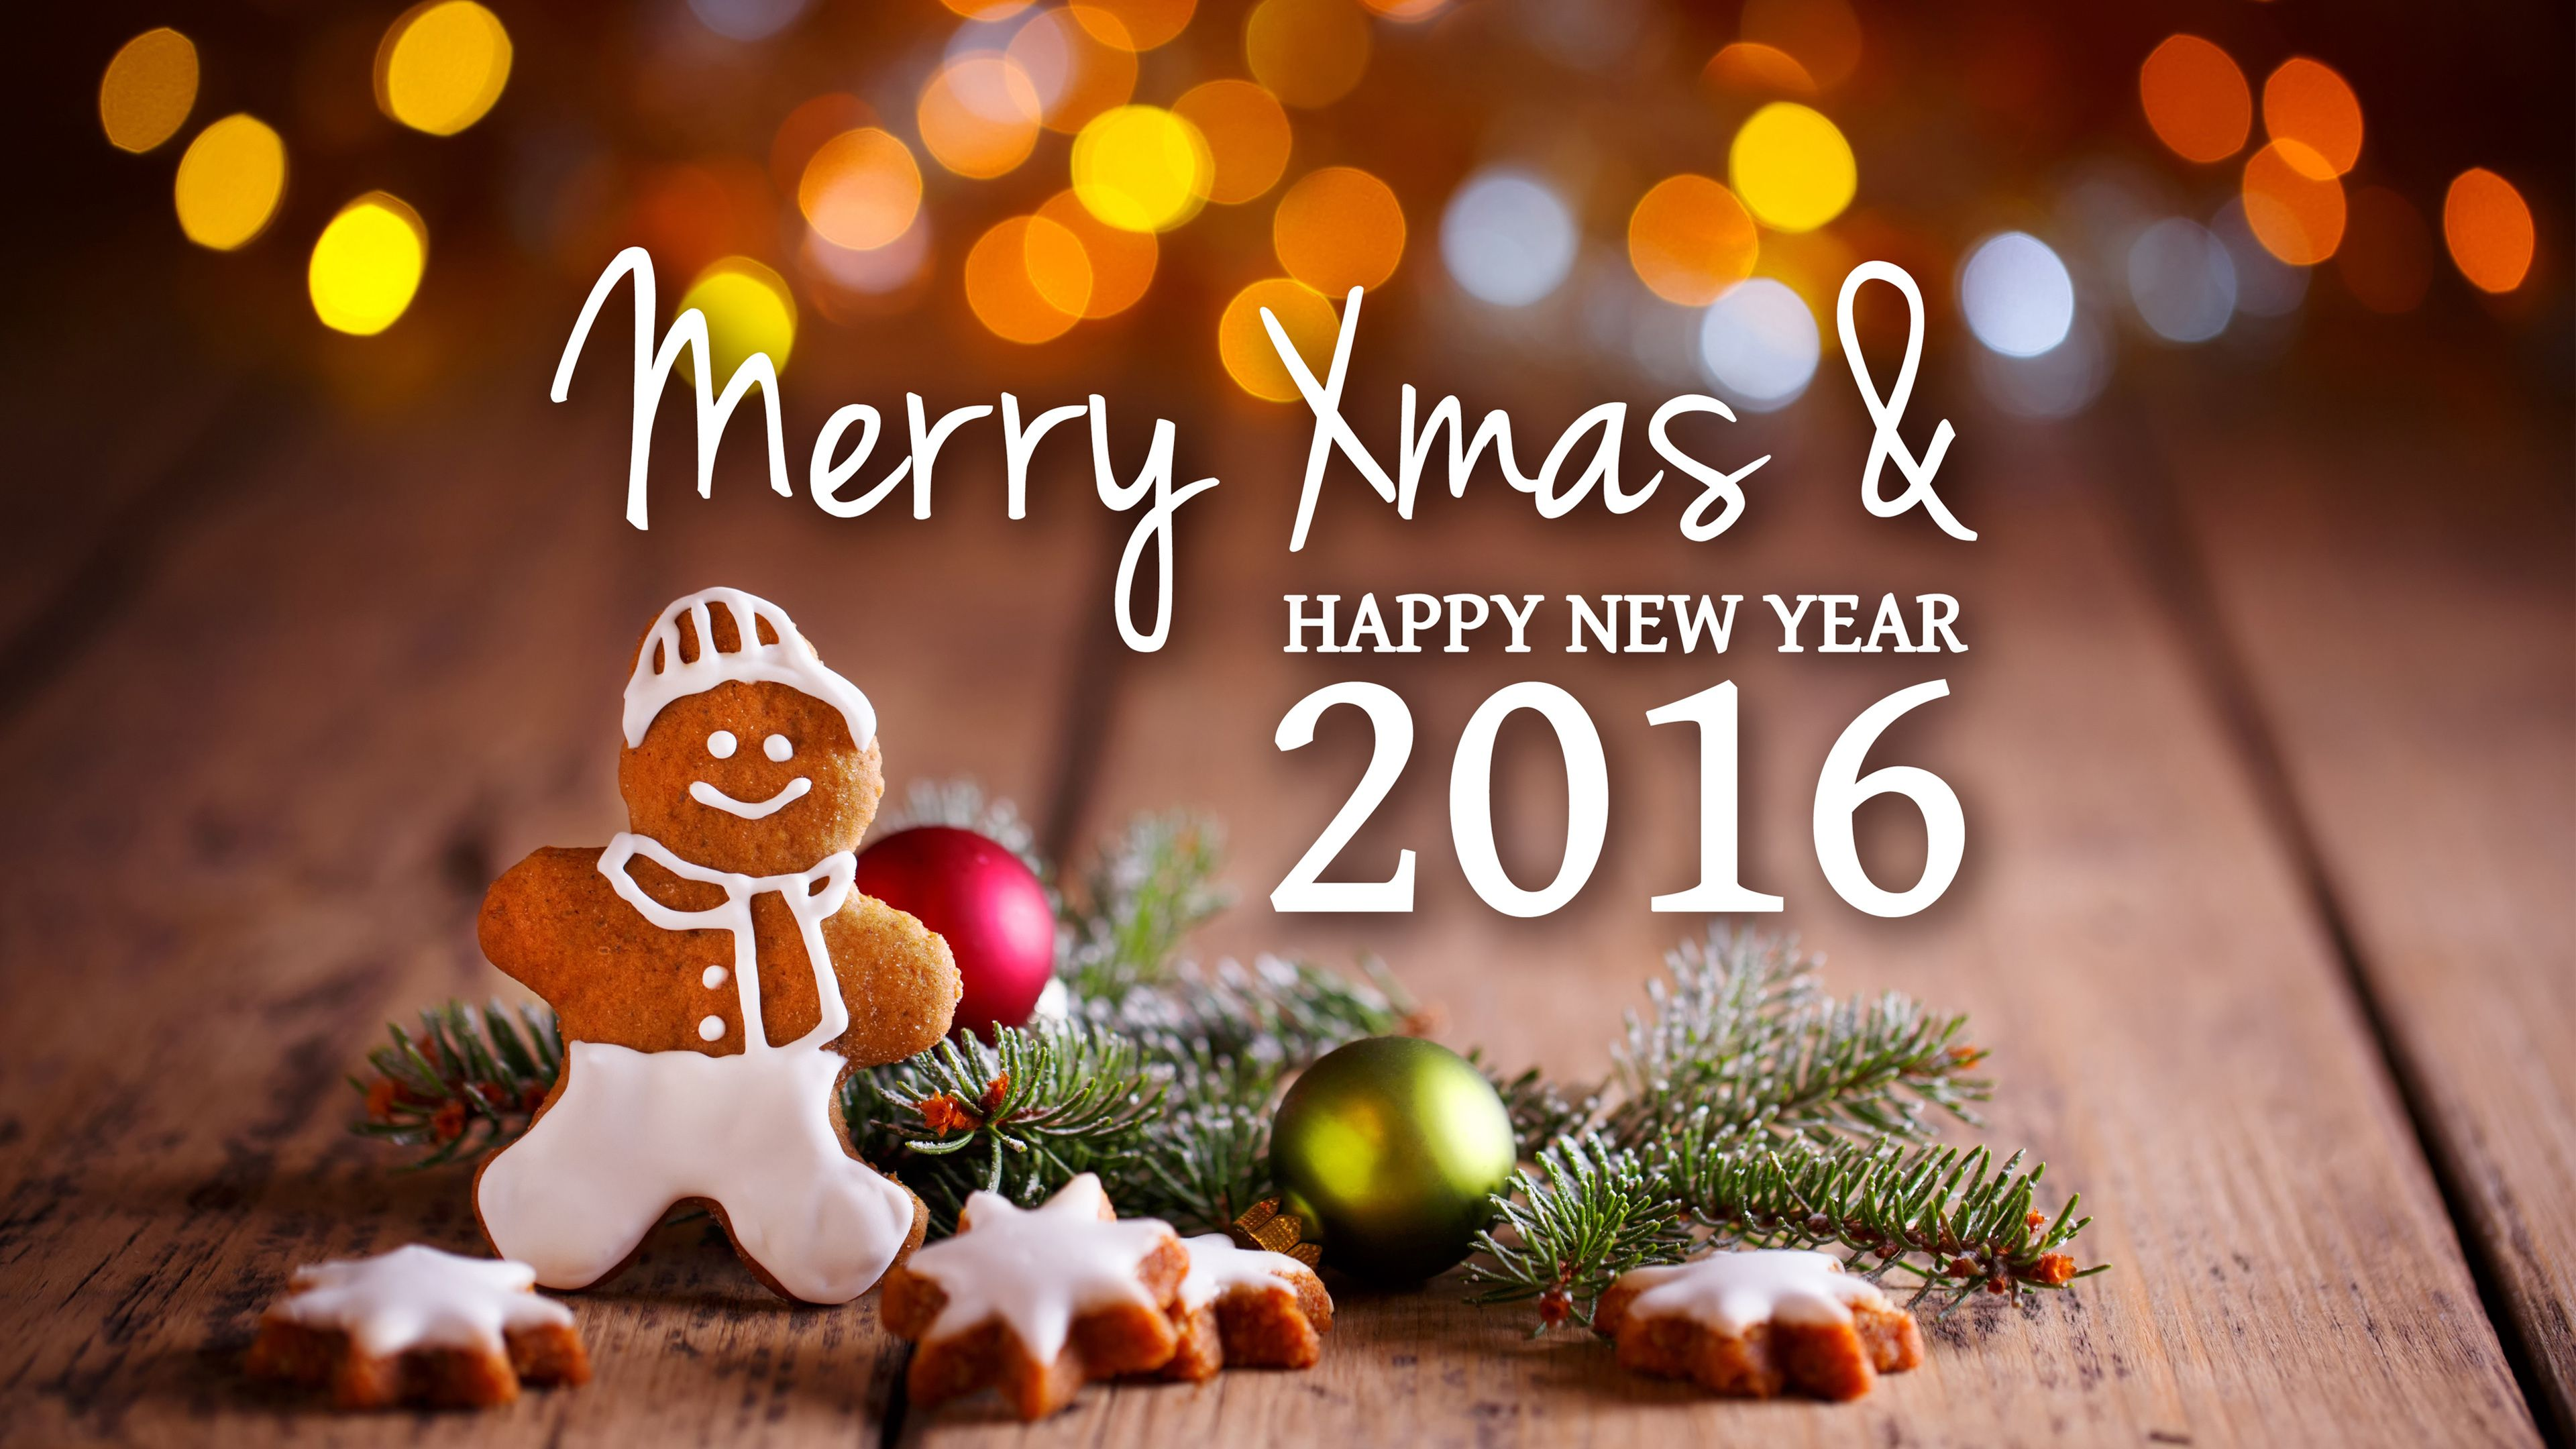 Download Merry Xmas New Year 2016 Wallpaper Best Wallpapers Hq Happy Christmas Eve Christmas Wishes Greetings Christmas Card Messages